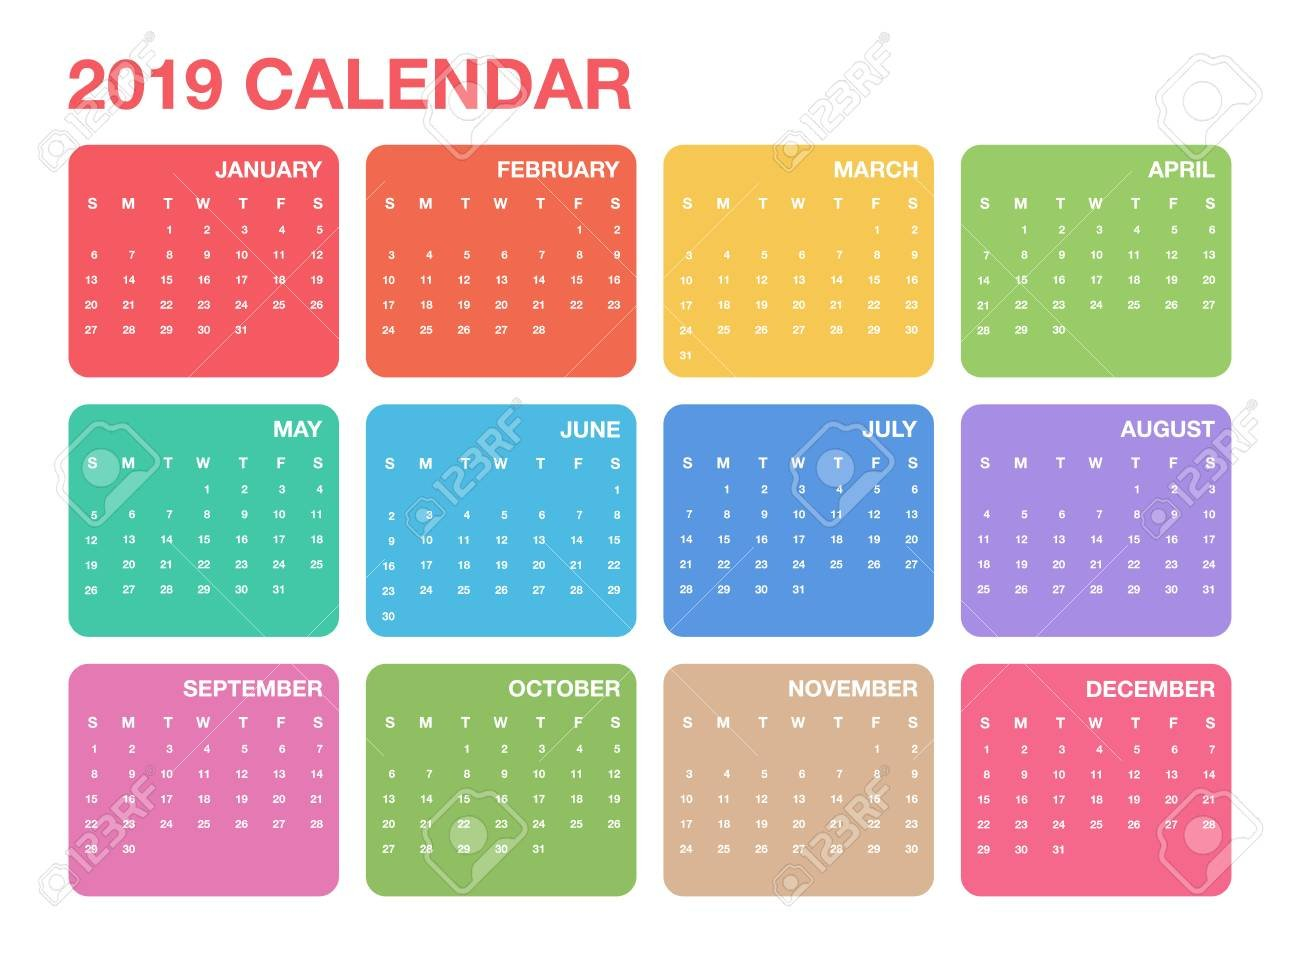 Calendar 2019 Template. Colorful Calendar Design For Planner Design A Calendar 2019